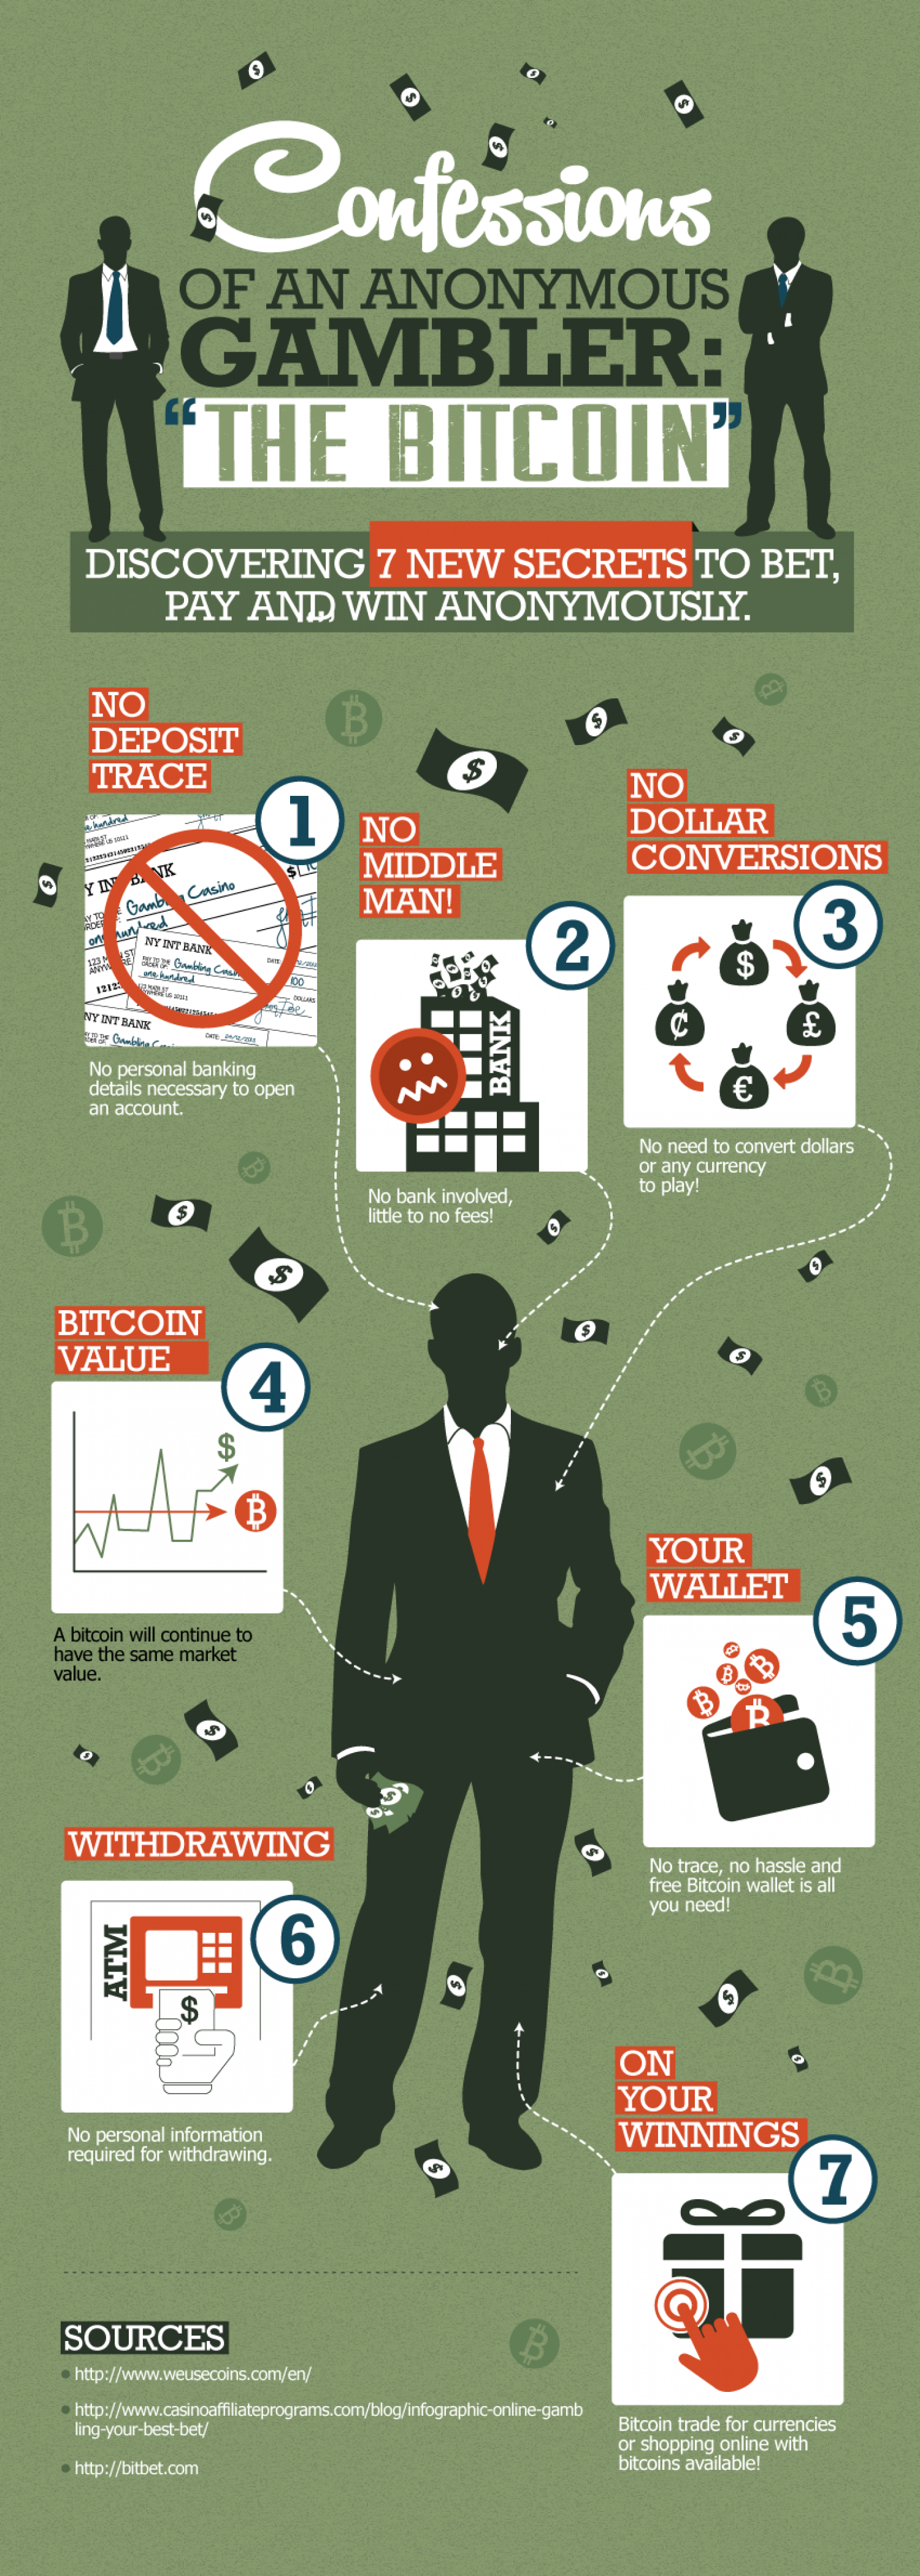 """Confessions Of An Anonymous Gambler: """"The Bitcoin"""" Infographic"""